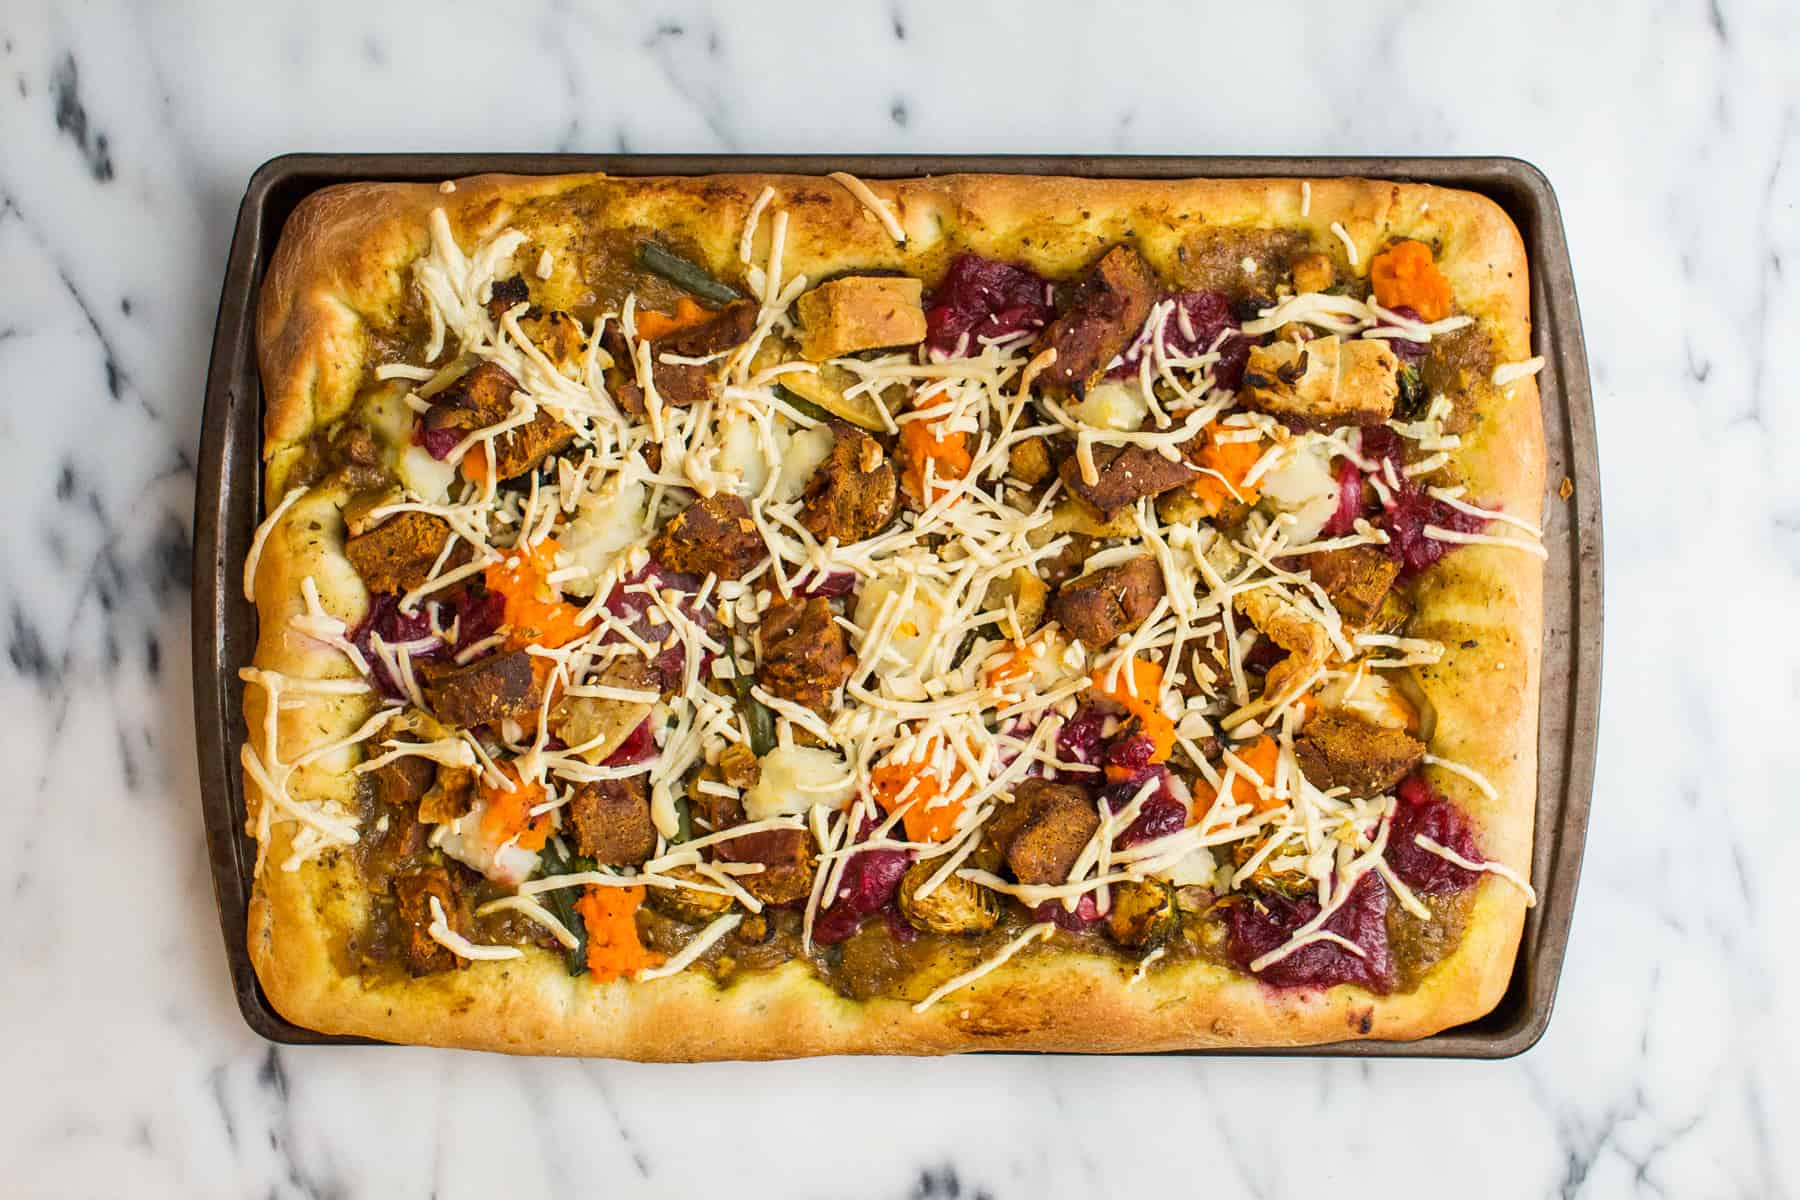 Overhead image of Thanksgiving pizza in pan on marble surface